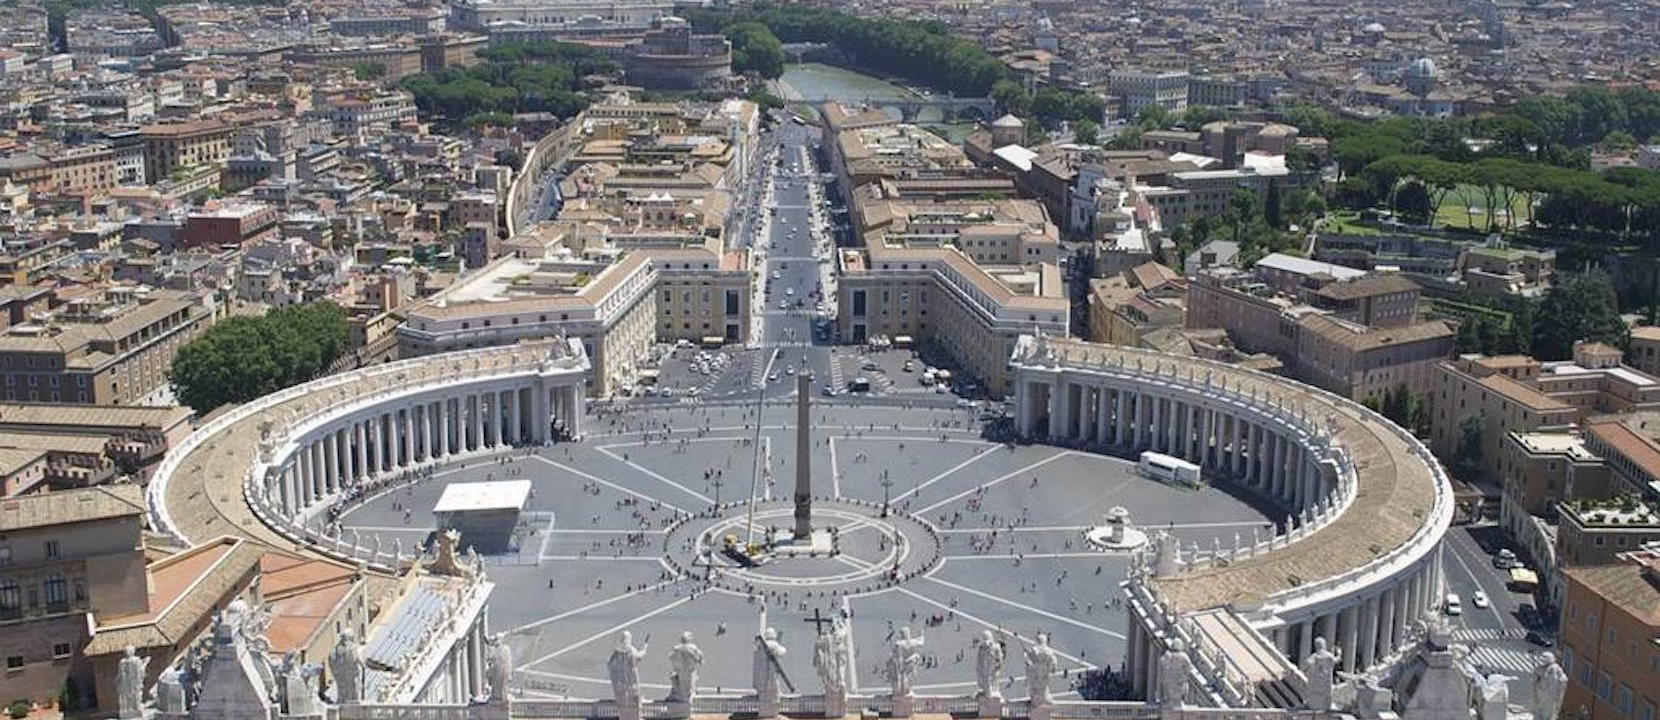 10 day Europe with highlight Vatican city/Rome & Lourdes (High in demand)